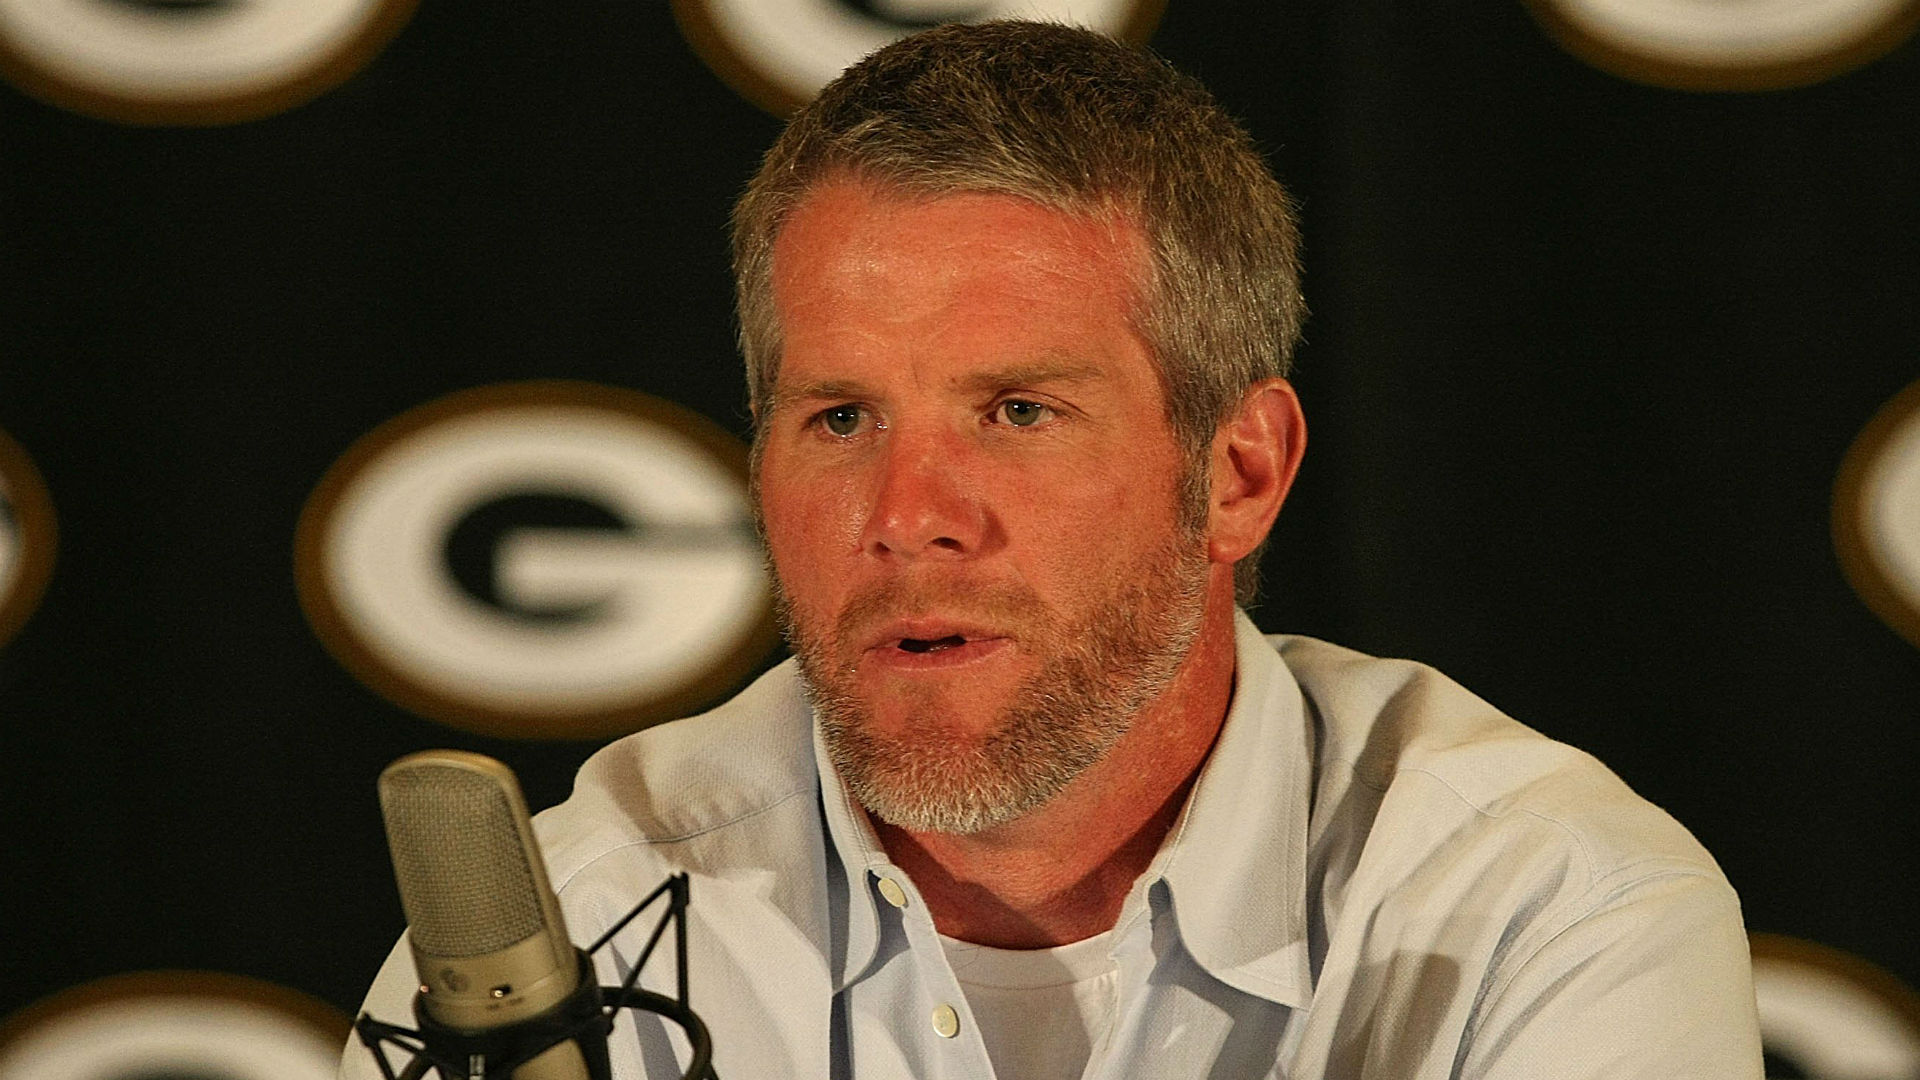 Brett Favre 'nervous' about grandsons playing football: 'It's a violent game'